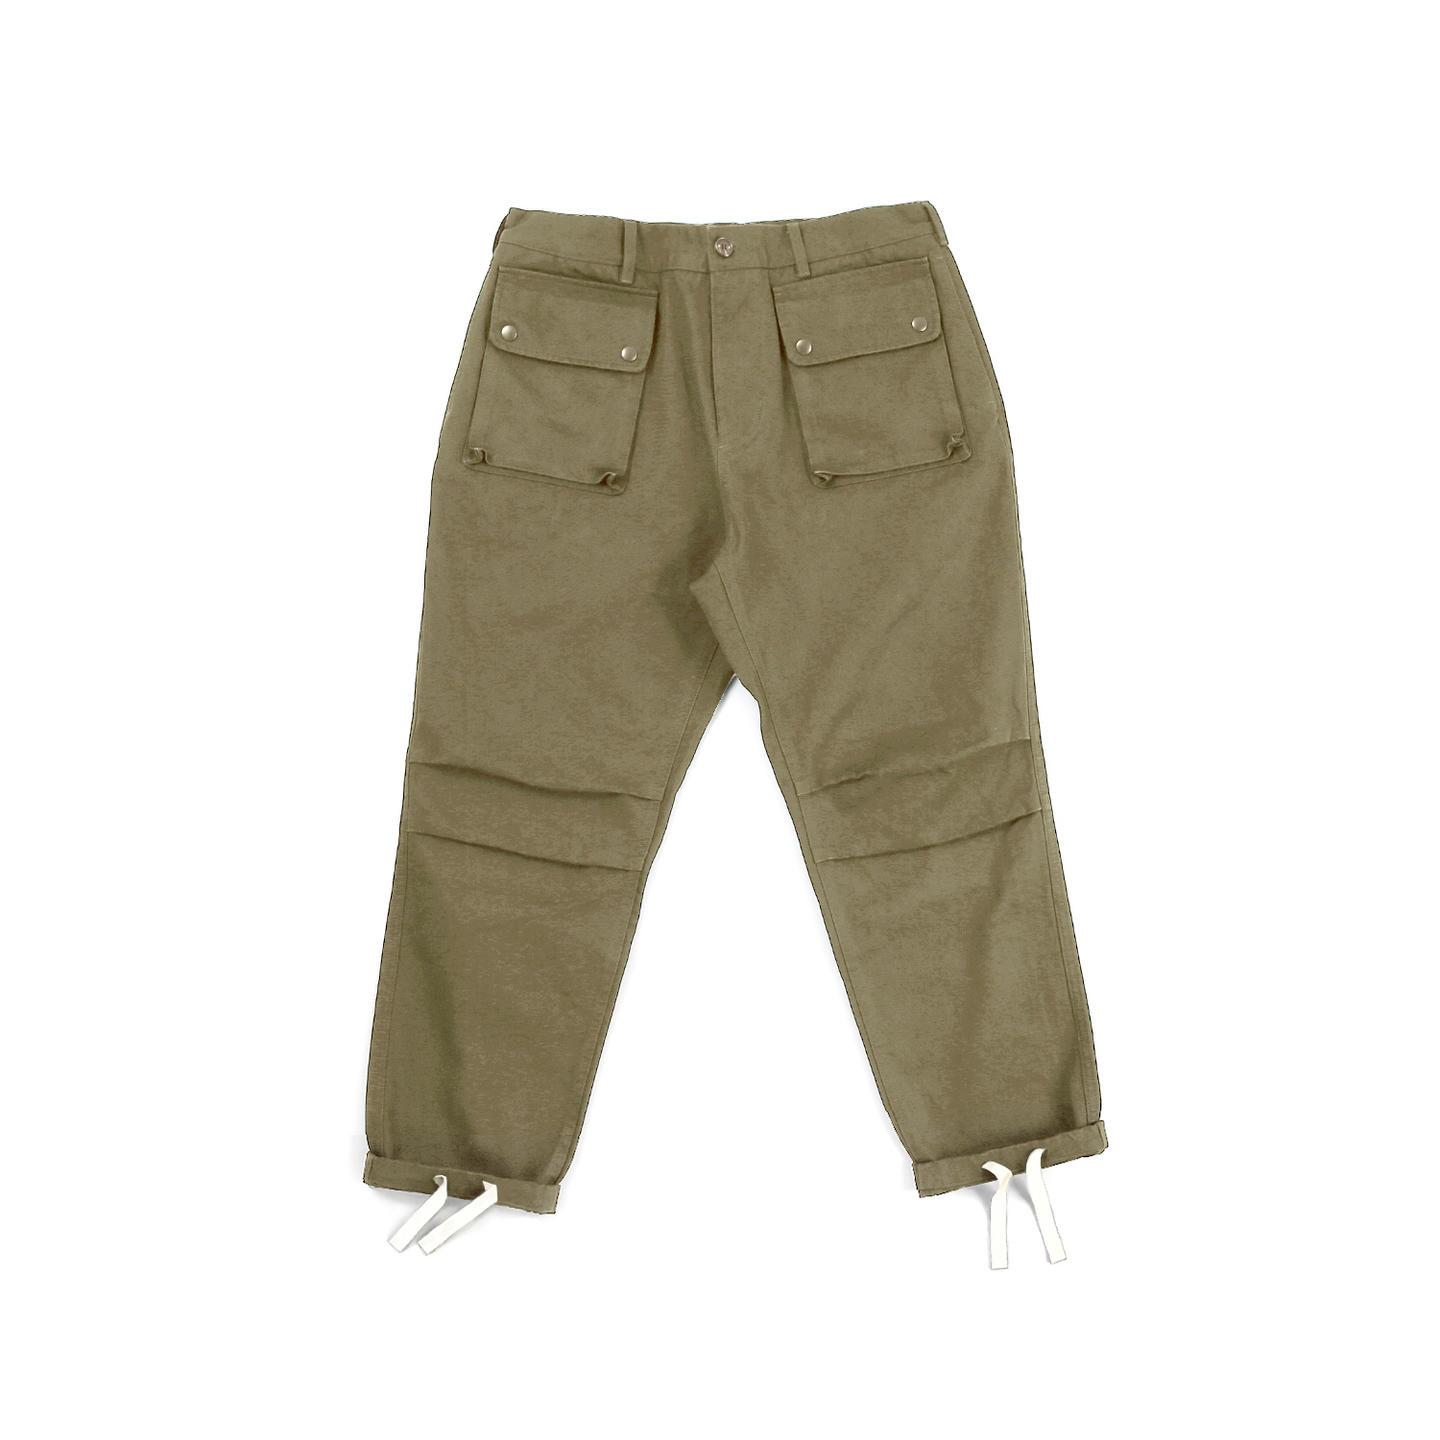 MOUNTAIN DIVISION PANTS (OLIVE)